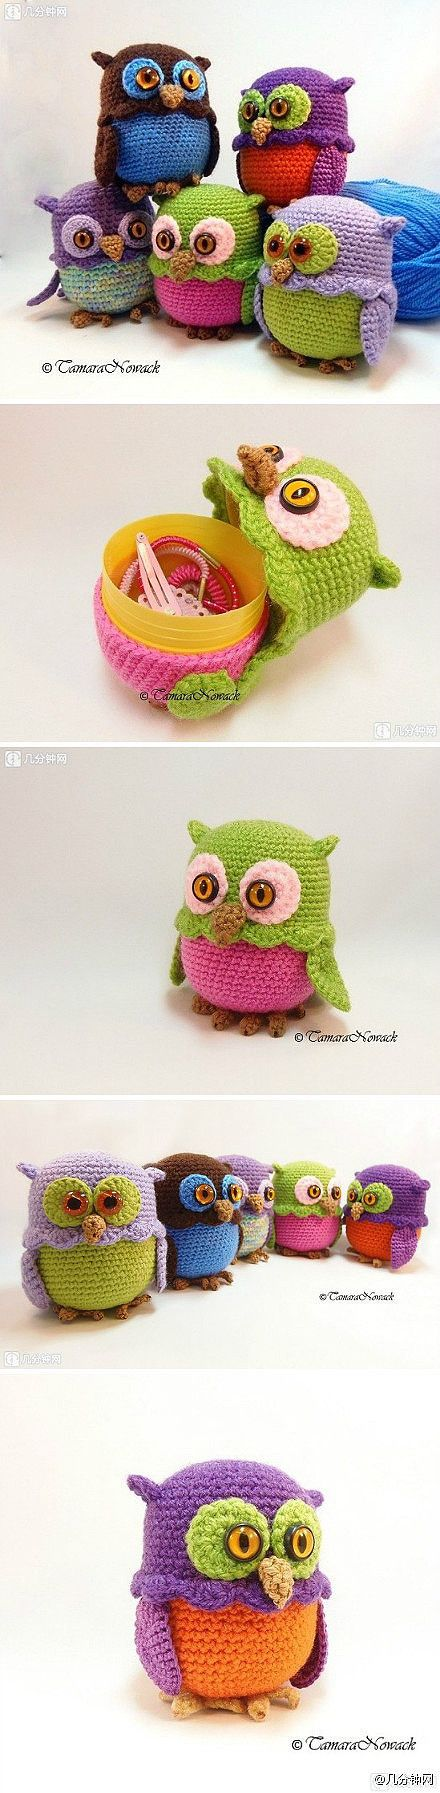 Crochet Owl cozy for plastic eggs ∙•❣•∙ Easter ∙•❣•∙ Cute storage idea for nick nacks or small, loose items.